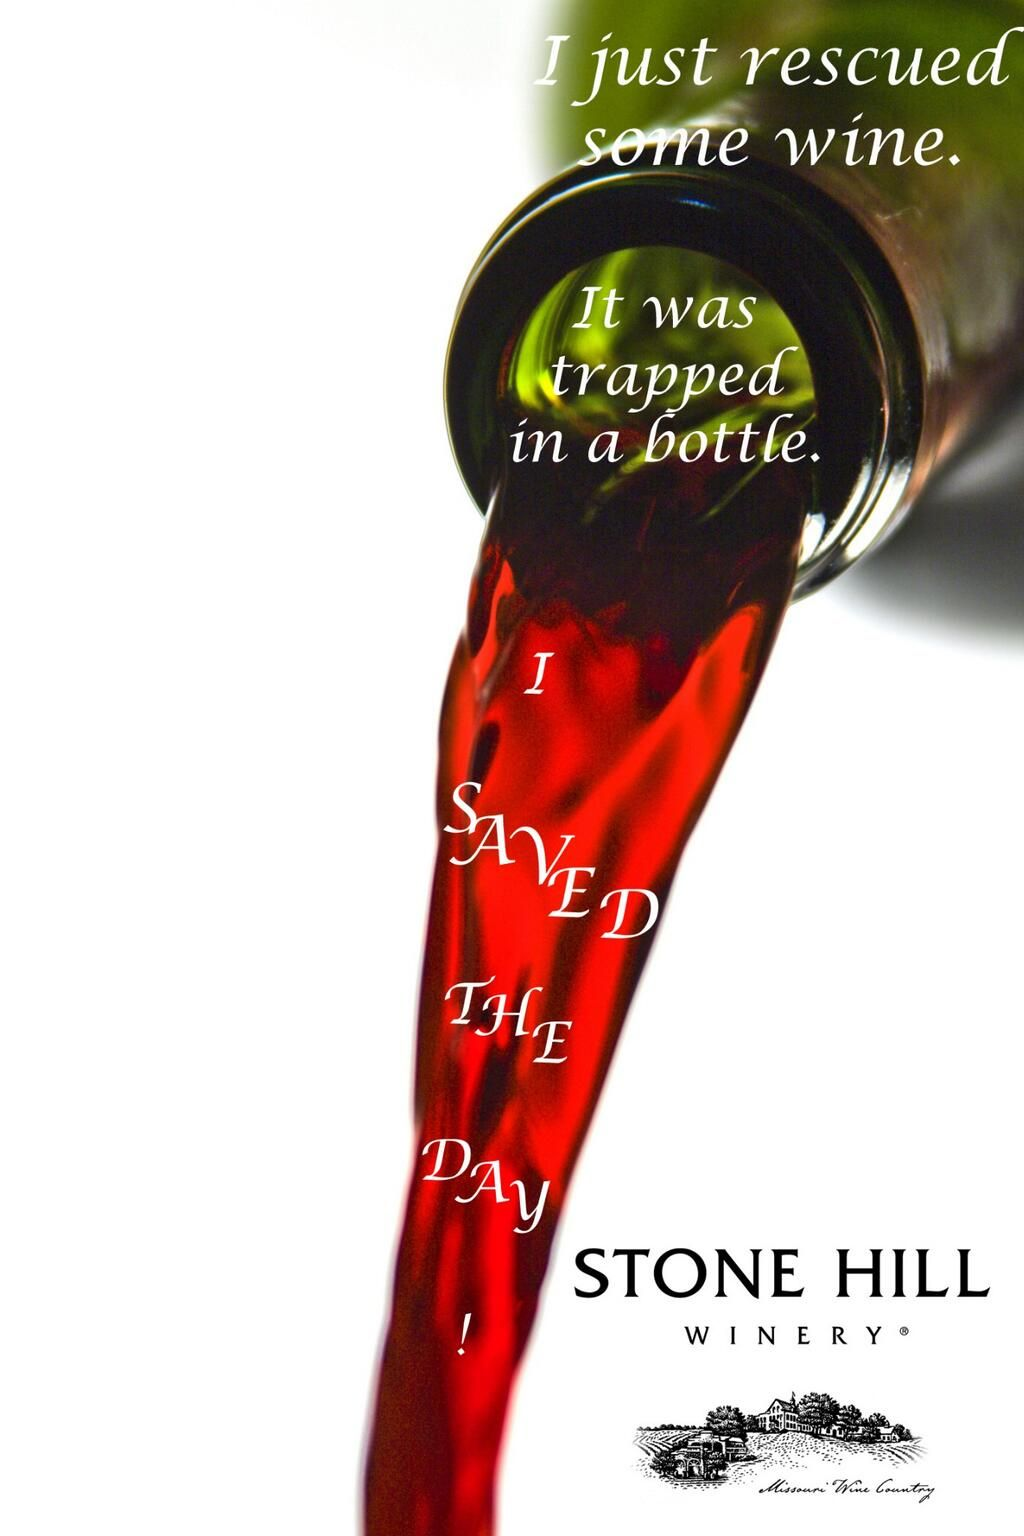 I Rescued Some Wine It Was Trapped In A Bottle I Saved The Day Stonehillwinery Wine Quotes Winery Wine